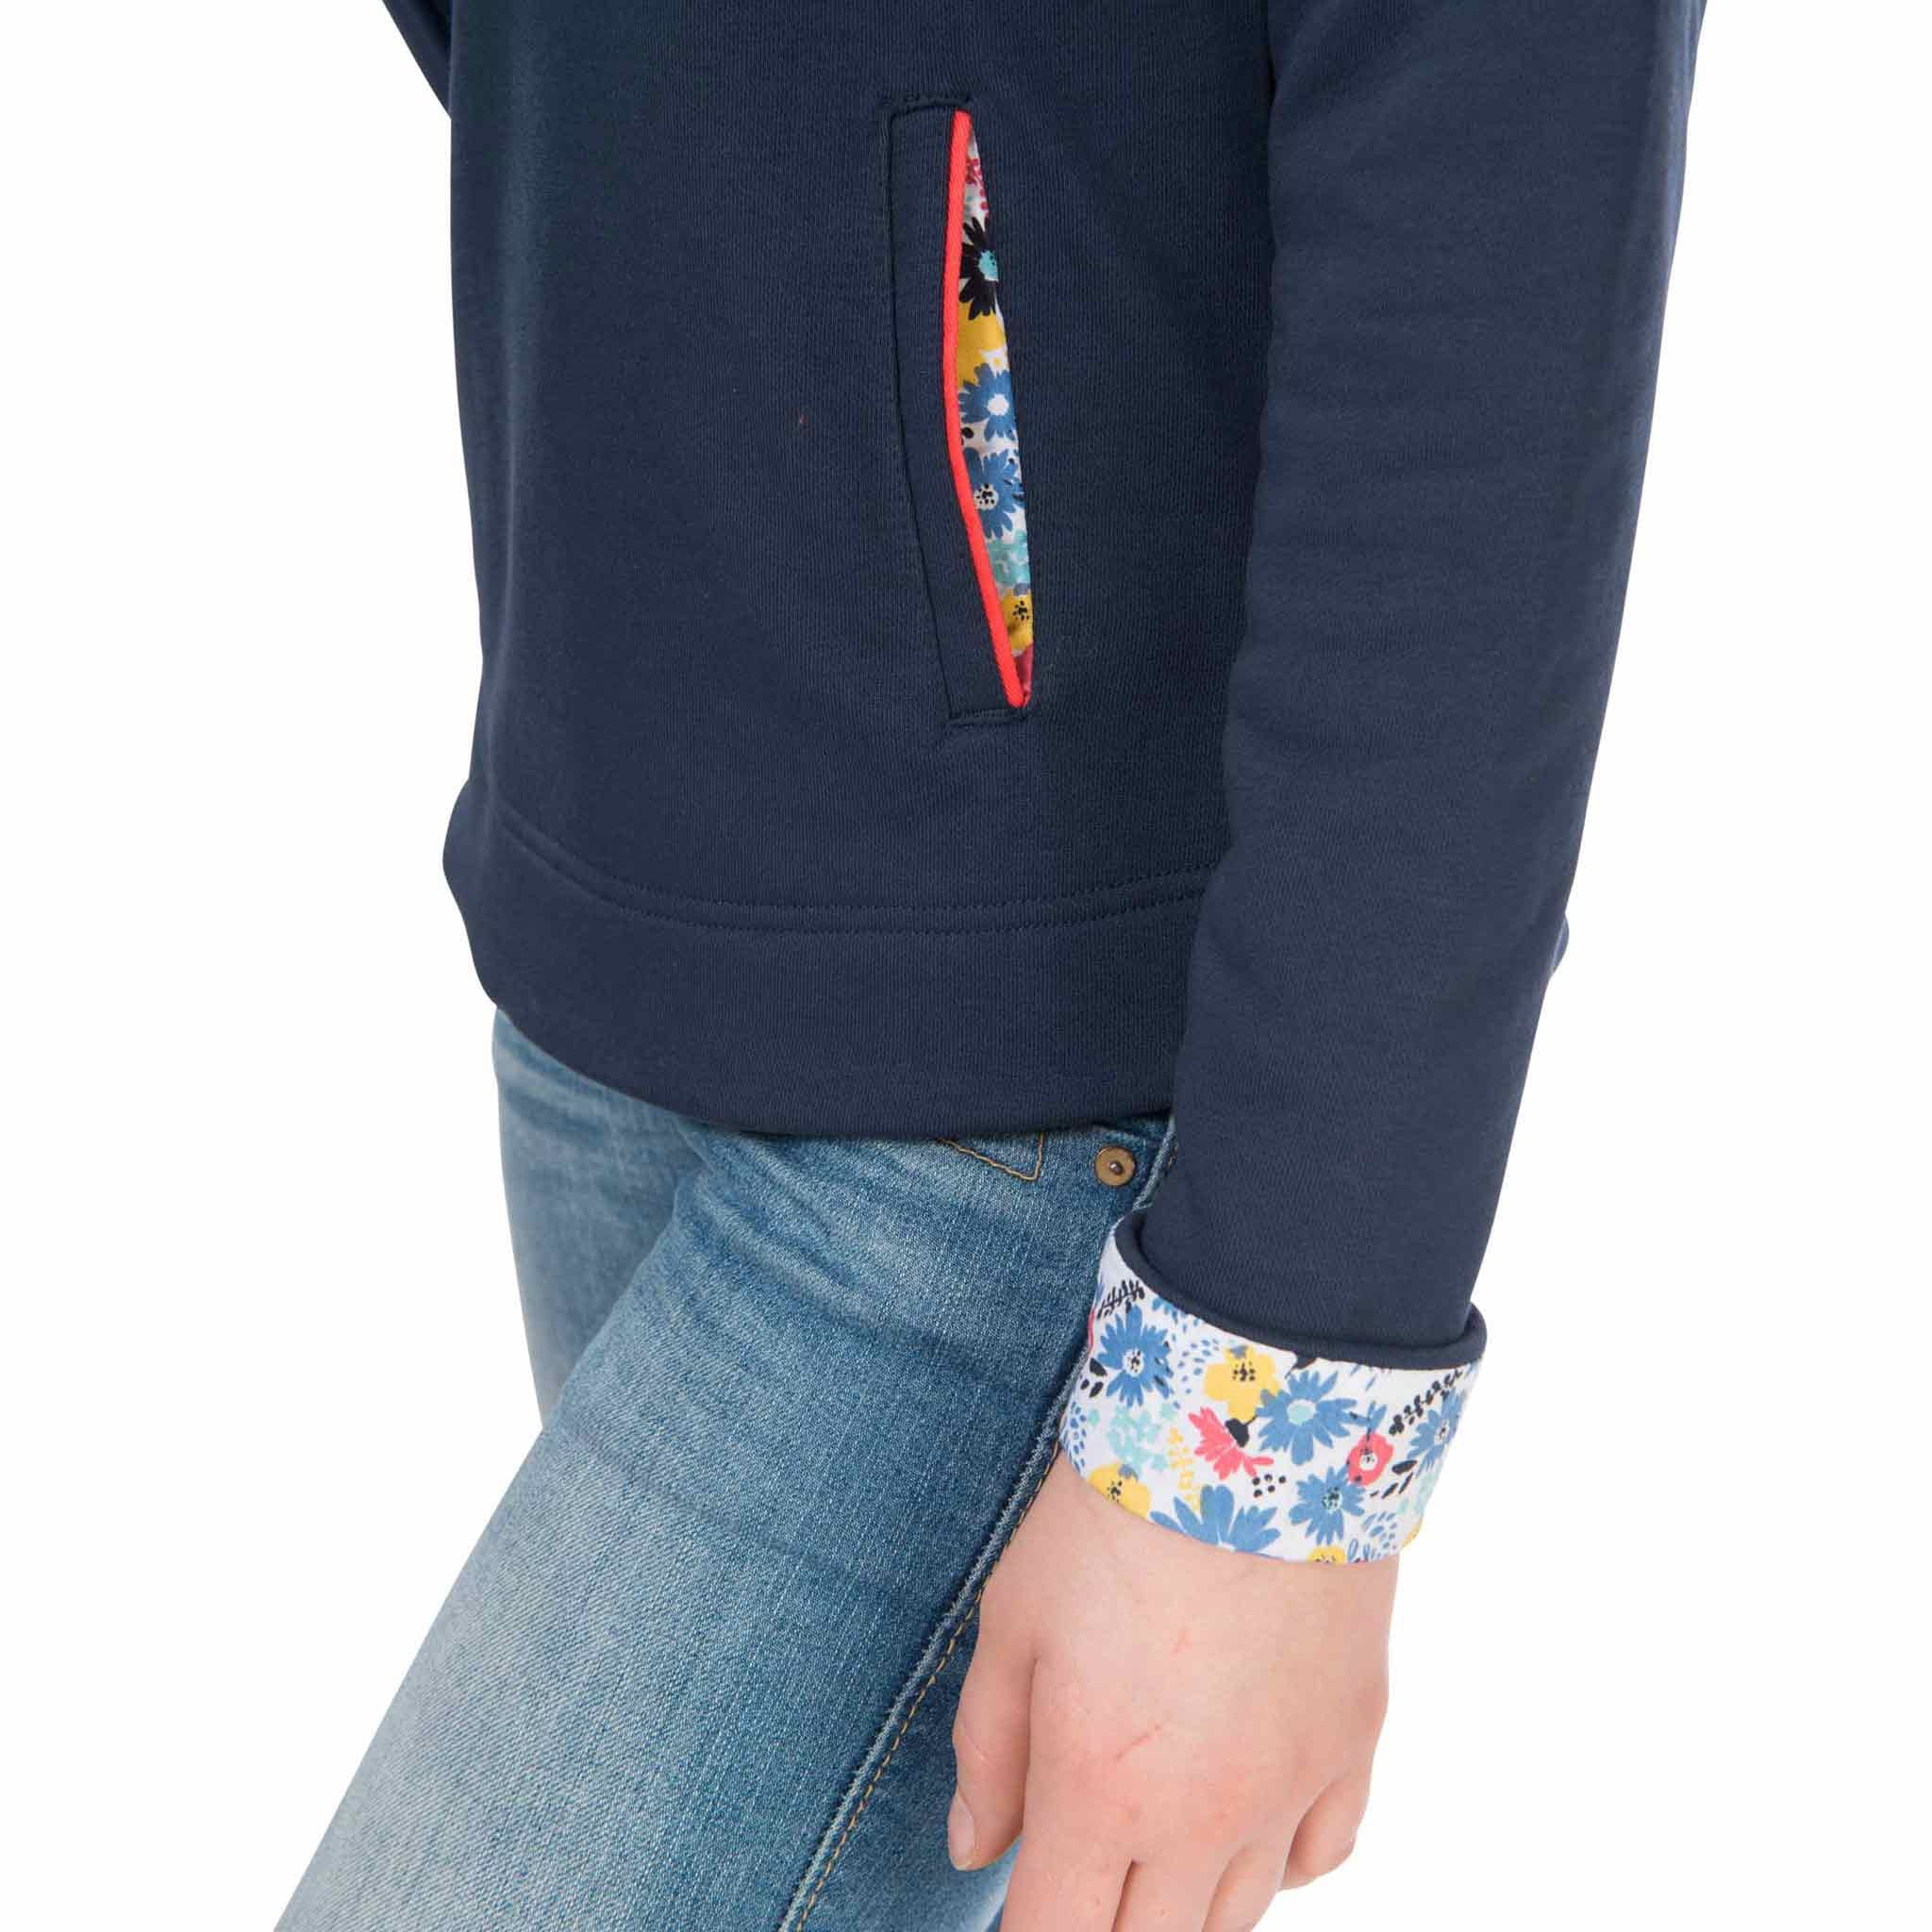 Coney Womens Half Button Sweatshirt in Night Sky, Modelled Cuff Detail View | Lighthouse